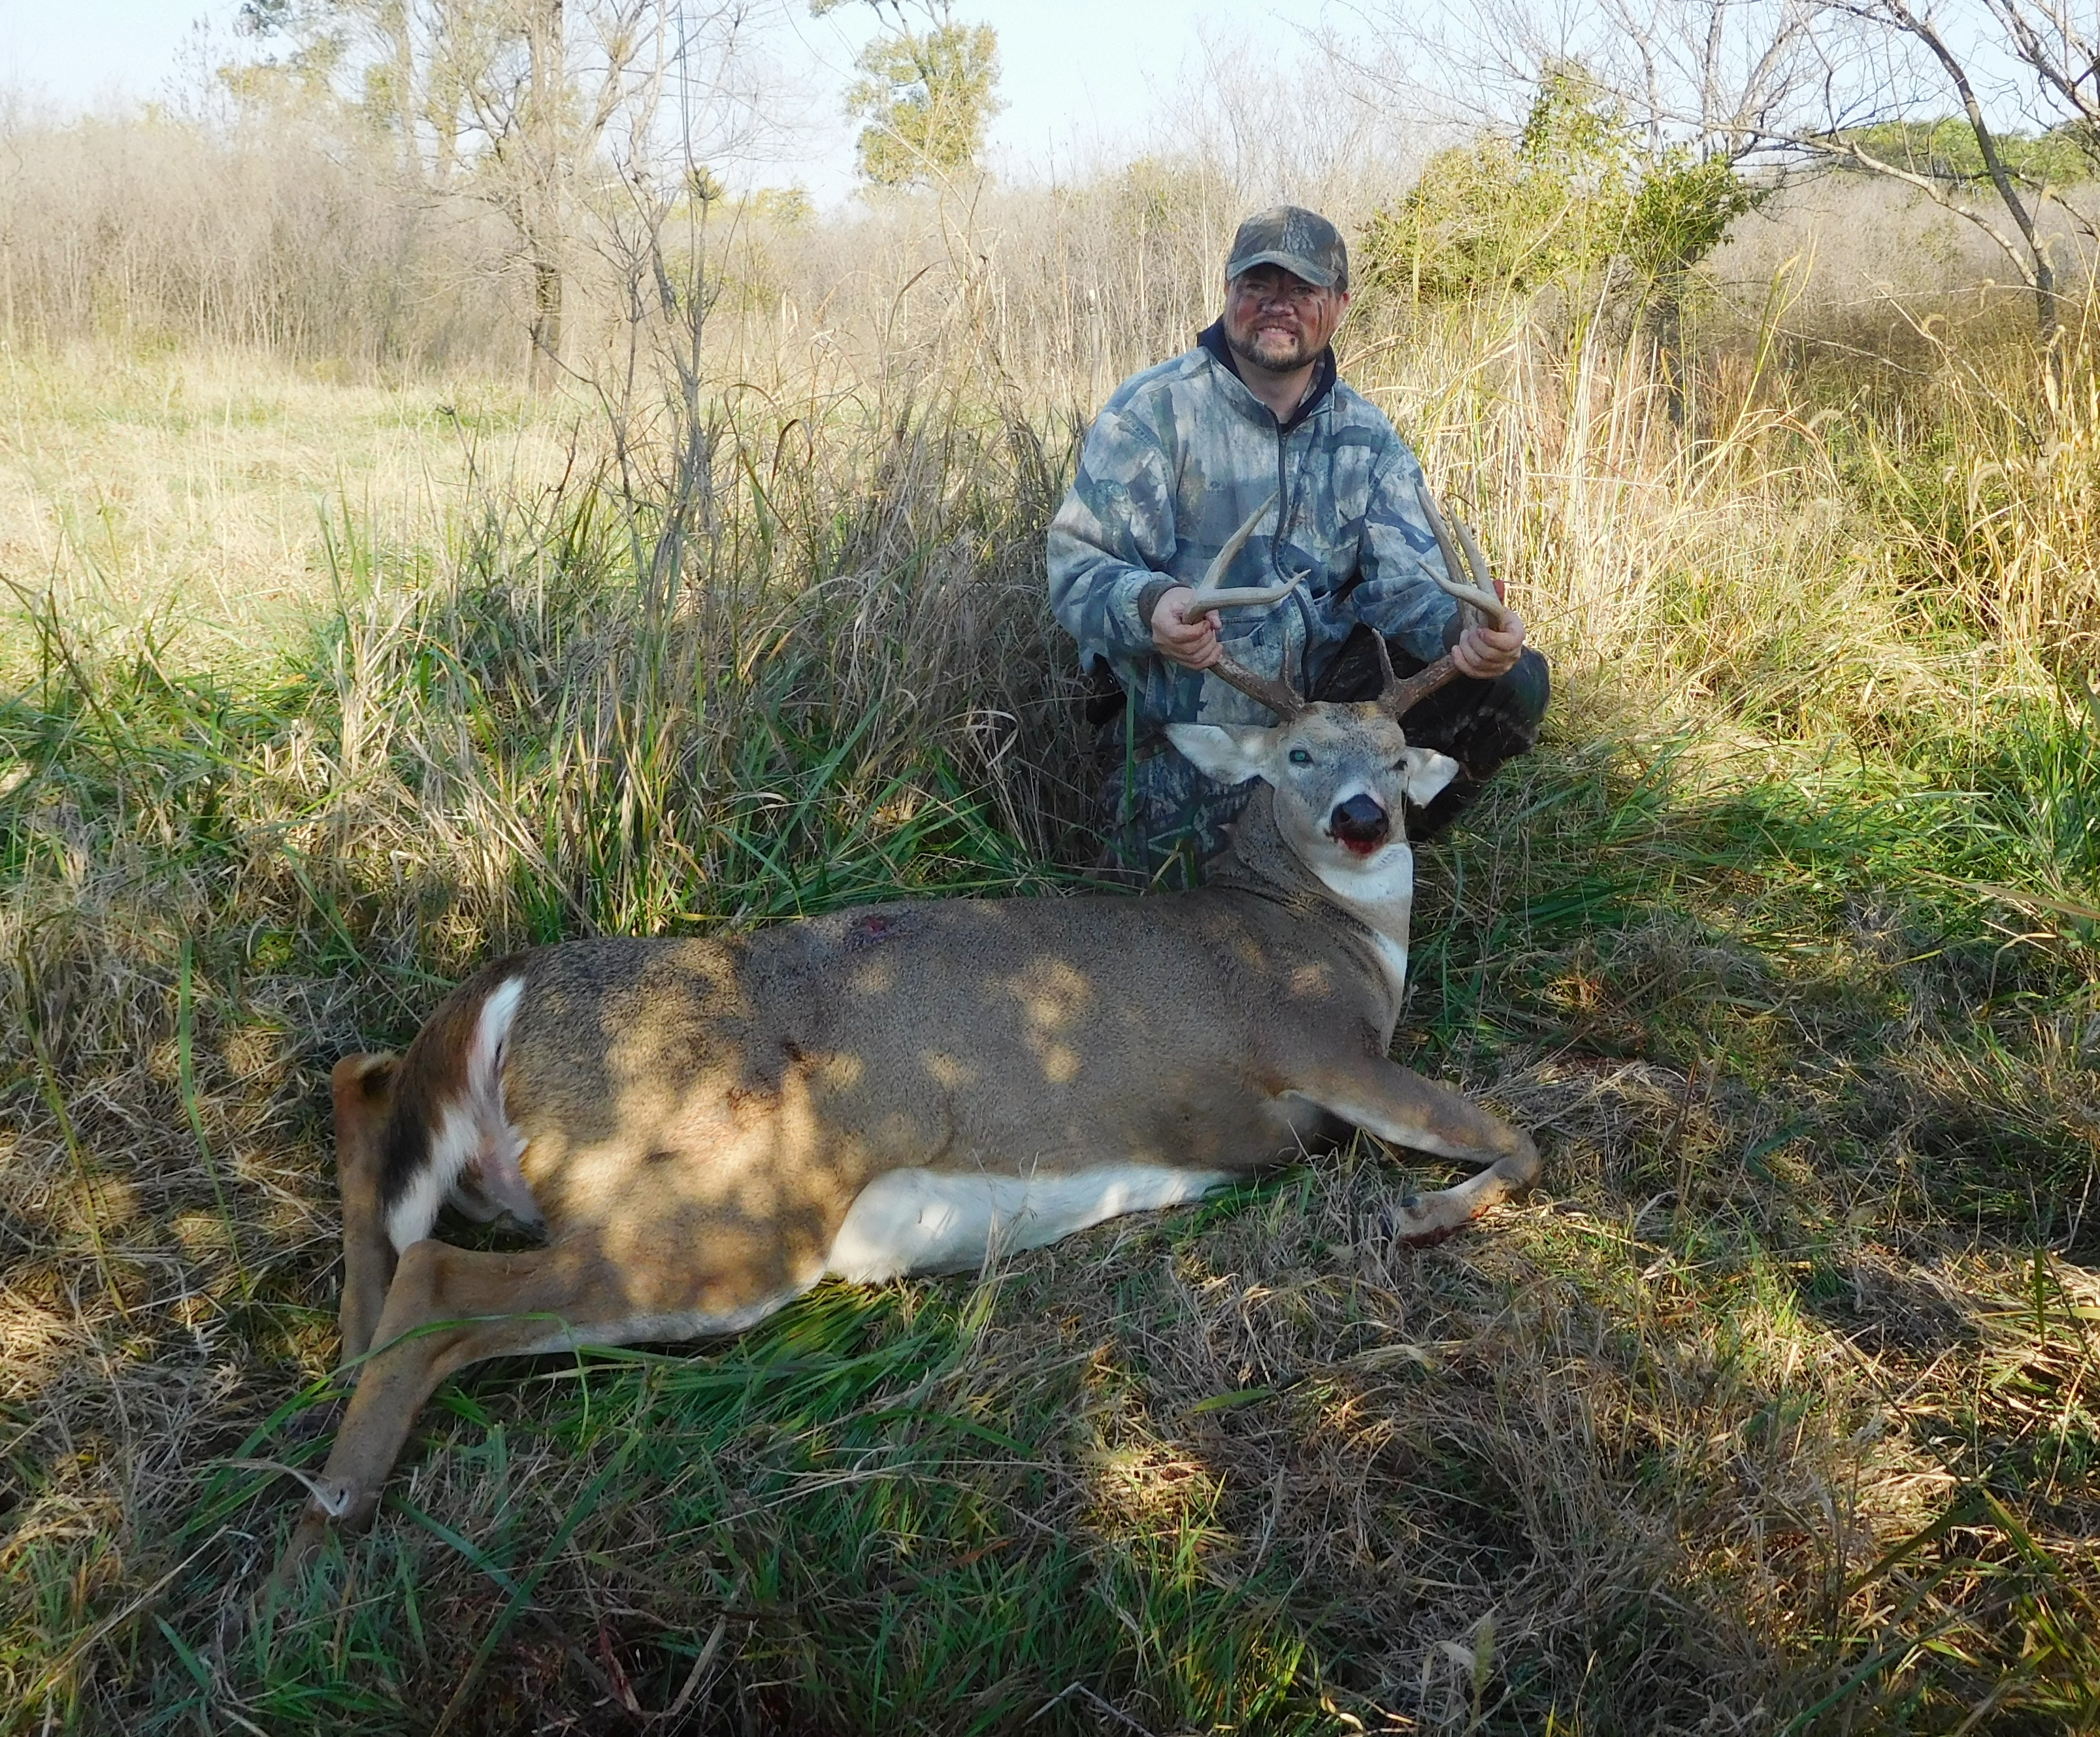 an analysis of deer hunting Game harvest reports data collection and analysis mandatory reports for deer, elk, bear, and turkey in 2017, those hunters obtaining transport tags for deer, elk, bear, and turkey were required to submit a hunting activity report for each transport tag purchased and for every special permit received, by the reporting deadline january 31, 2017.